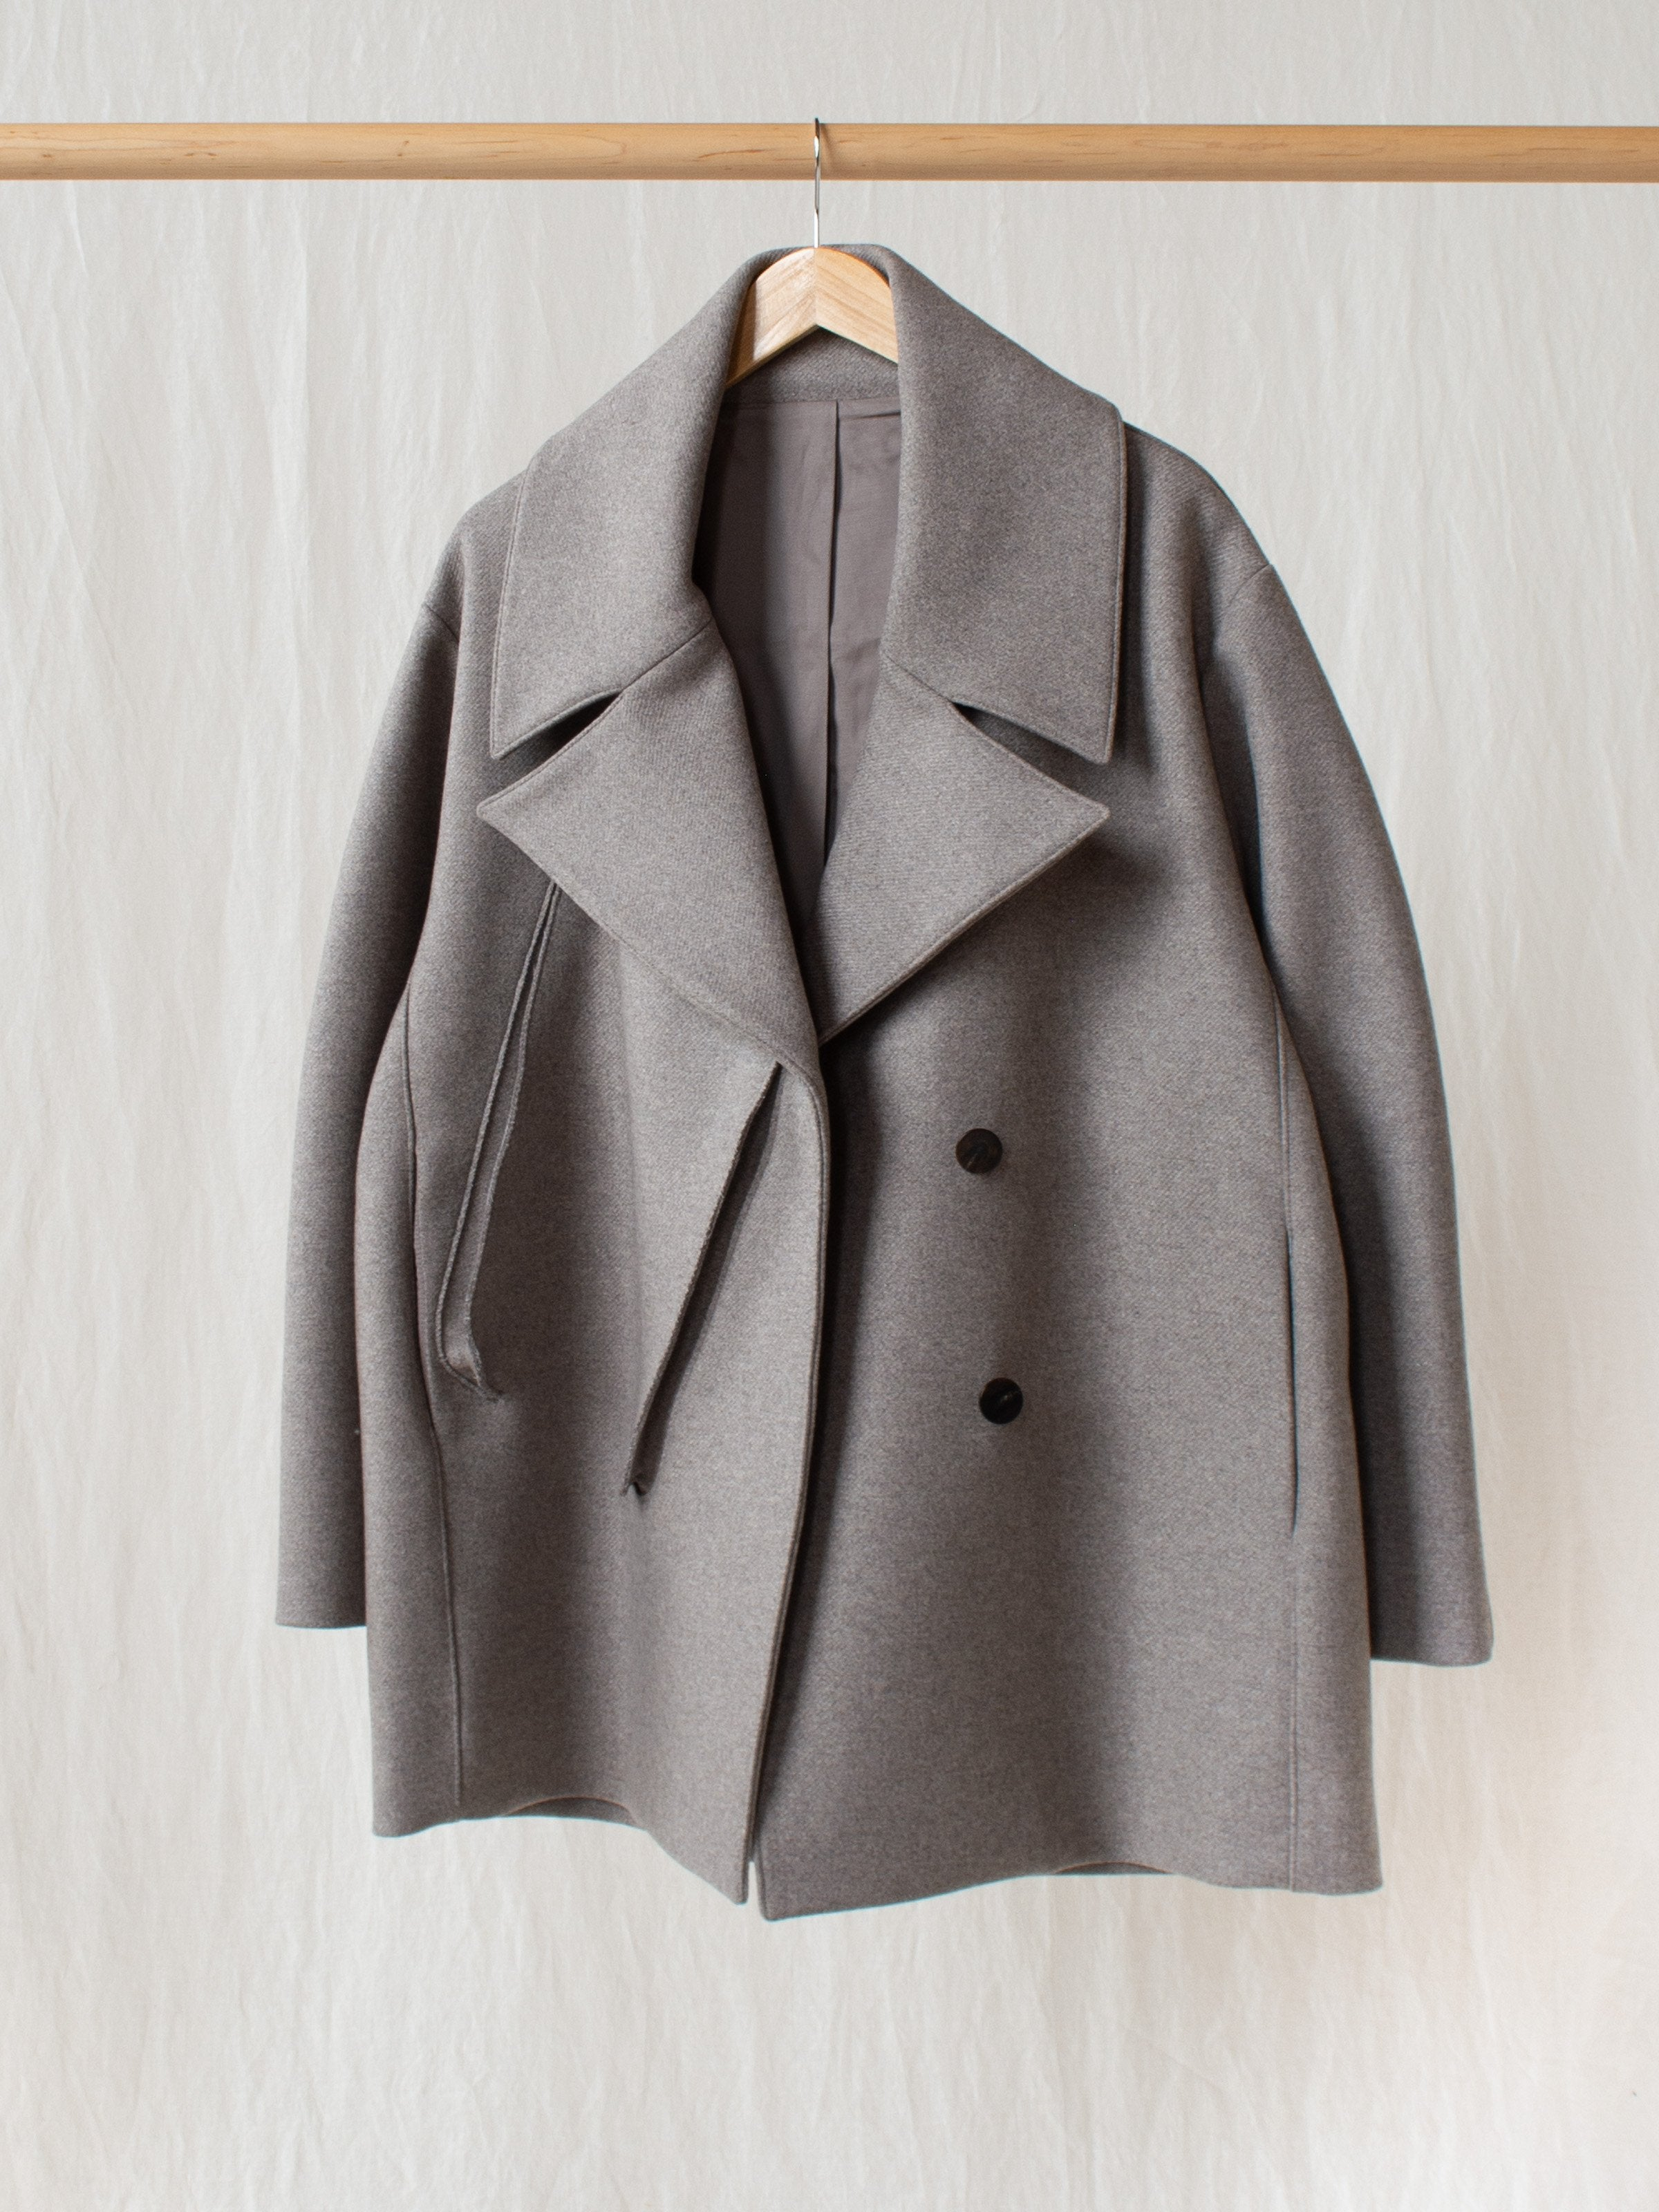 Namu Shop - Studio Nicholson Myrio Oversized Coat in Double Faced Wool